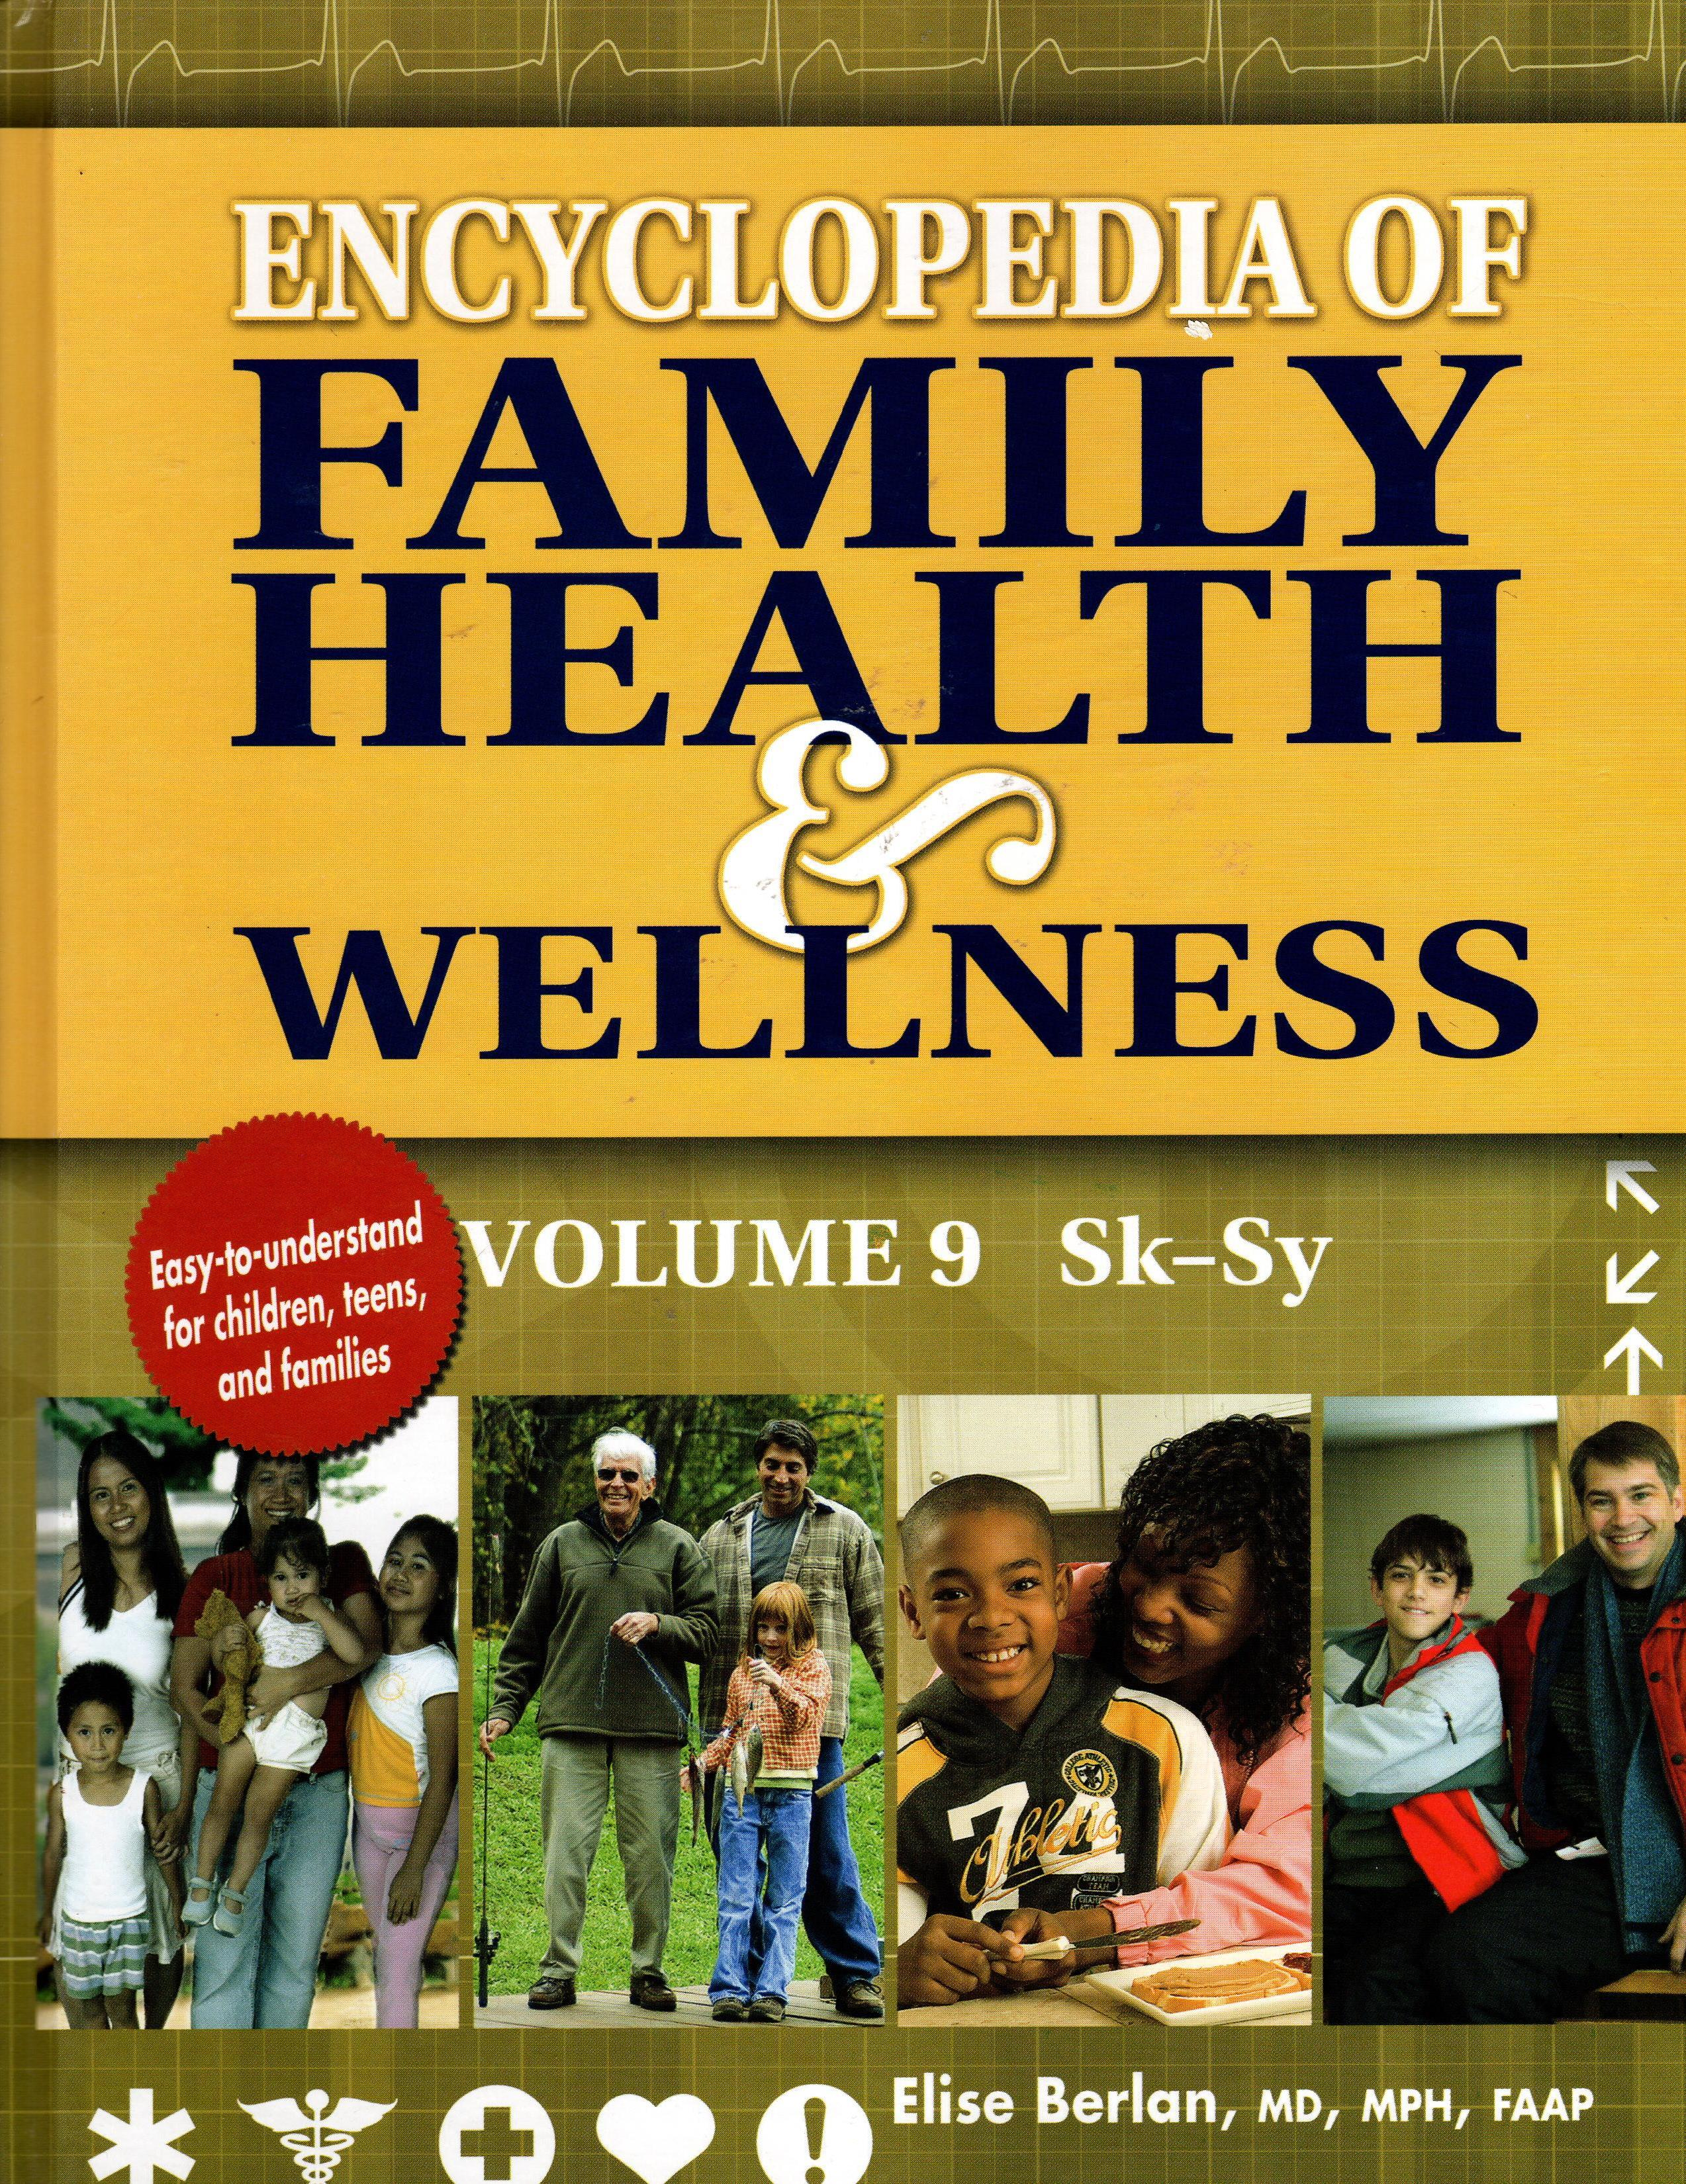 Image for ENCYCLOPEDIA OF FAMILY HEALTH & WELLNESS, VOL. 9 SK-SY